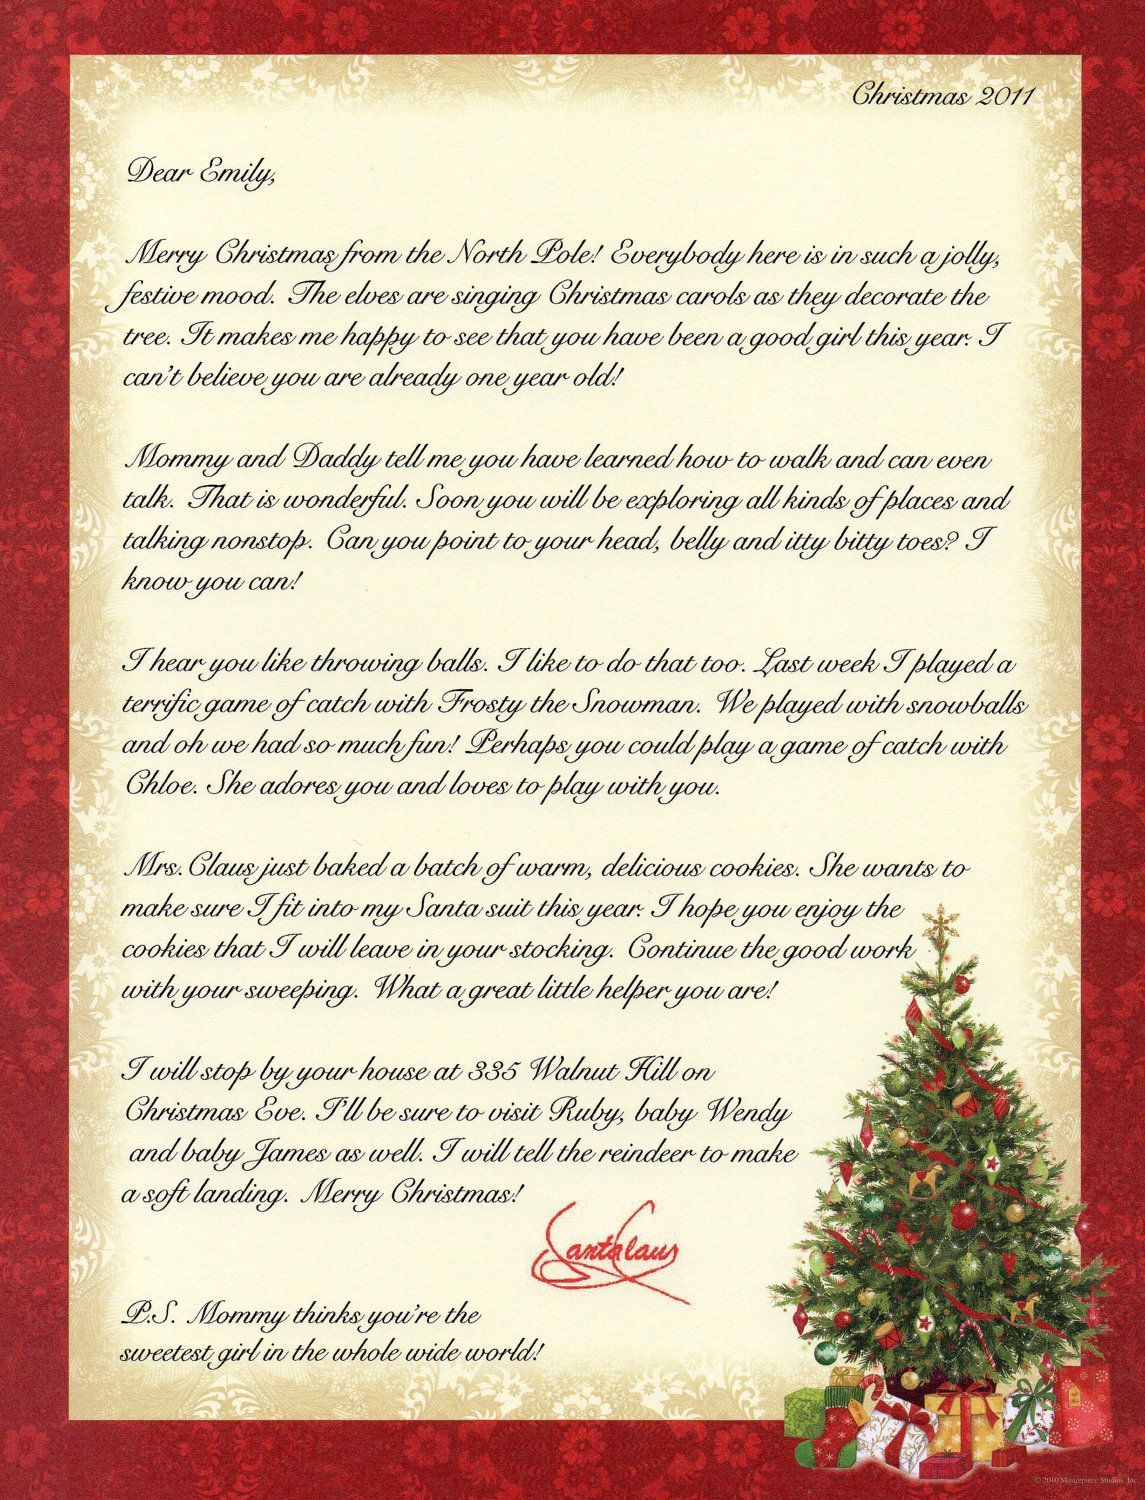 Personalized Letter From Santa Claus By Merrymailbox On Etsy